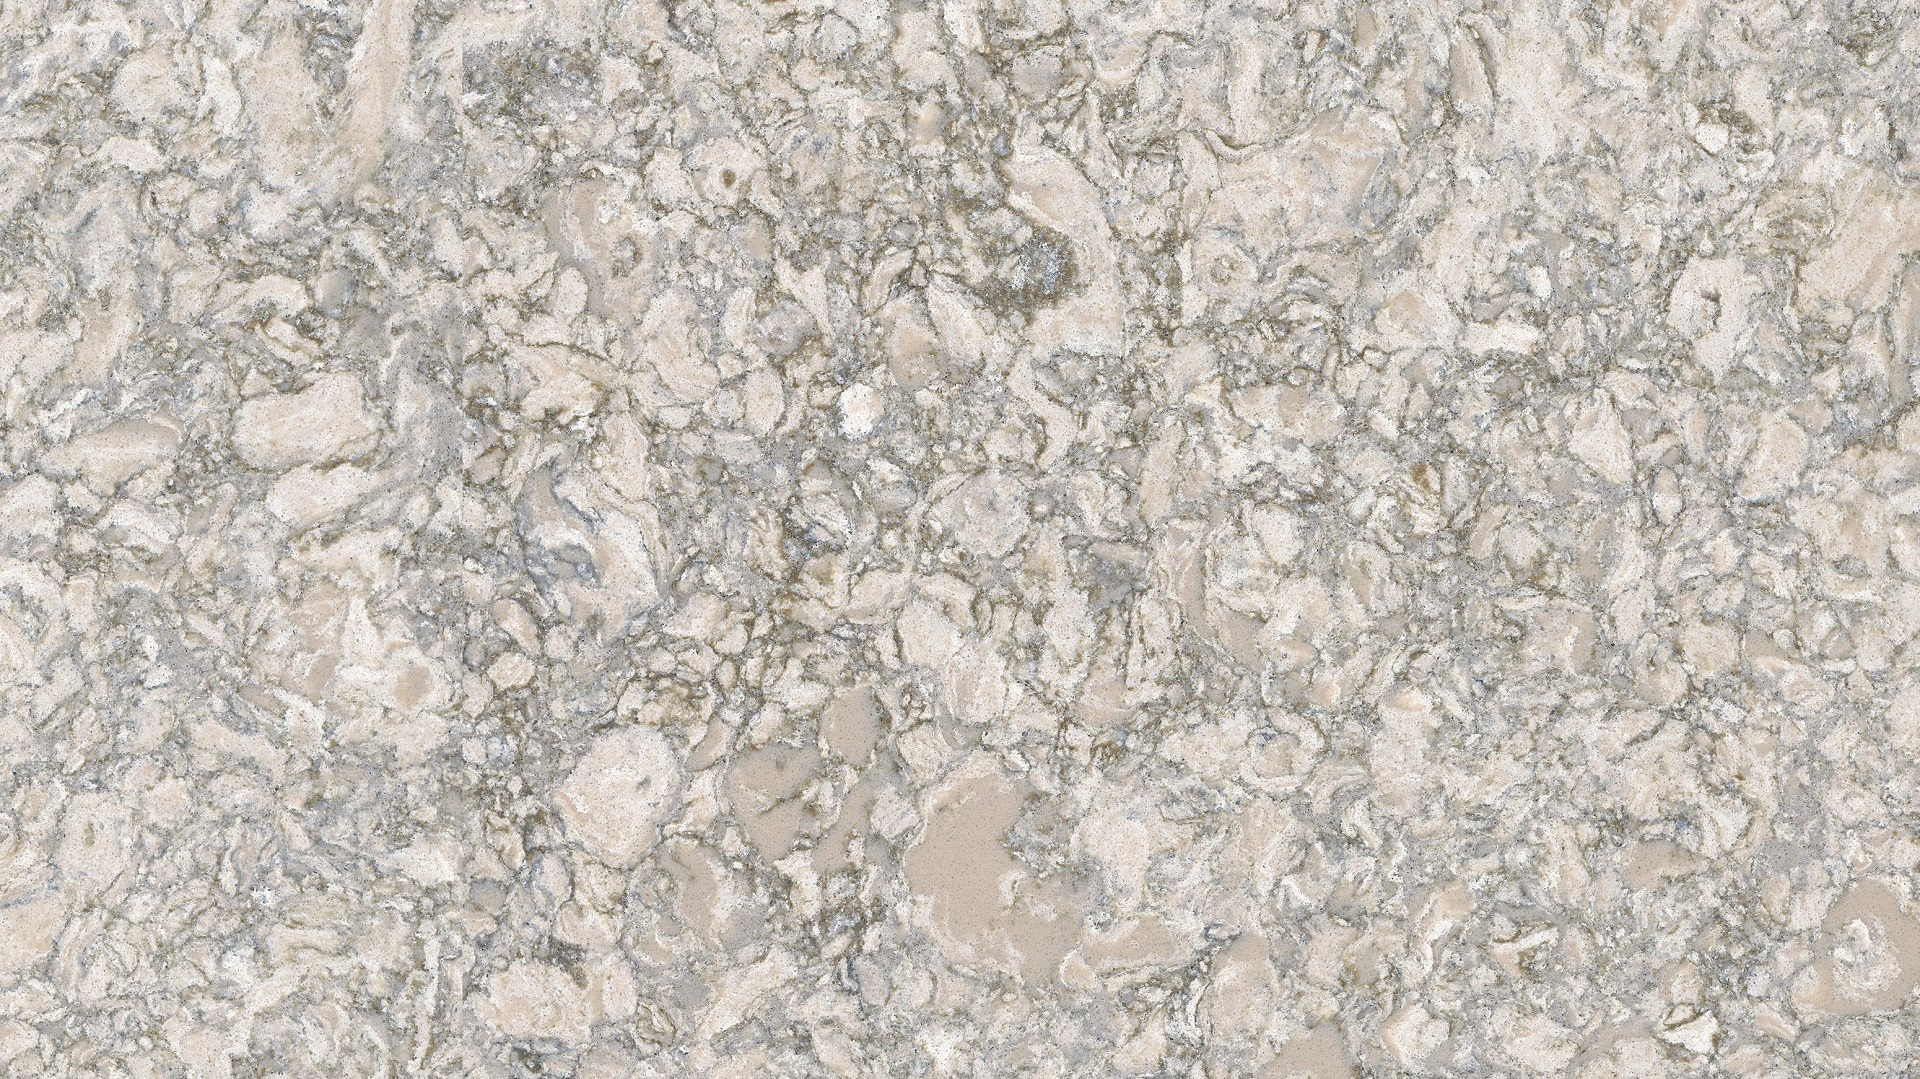 Luxurious cambria countertops colors visuals totaltravel us for Quartz countertop slab dimensions